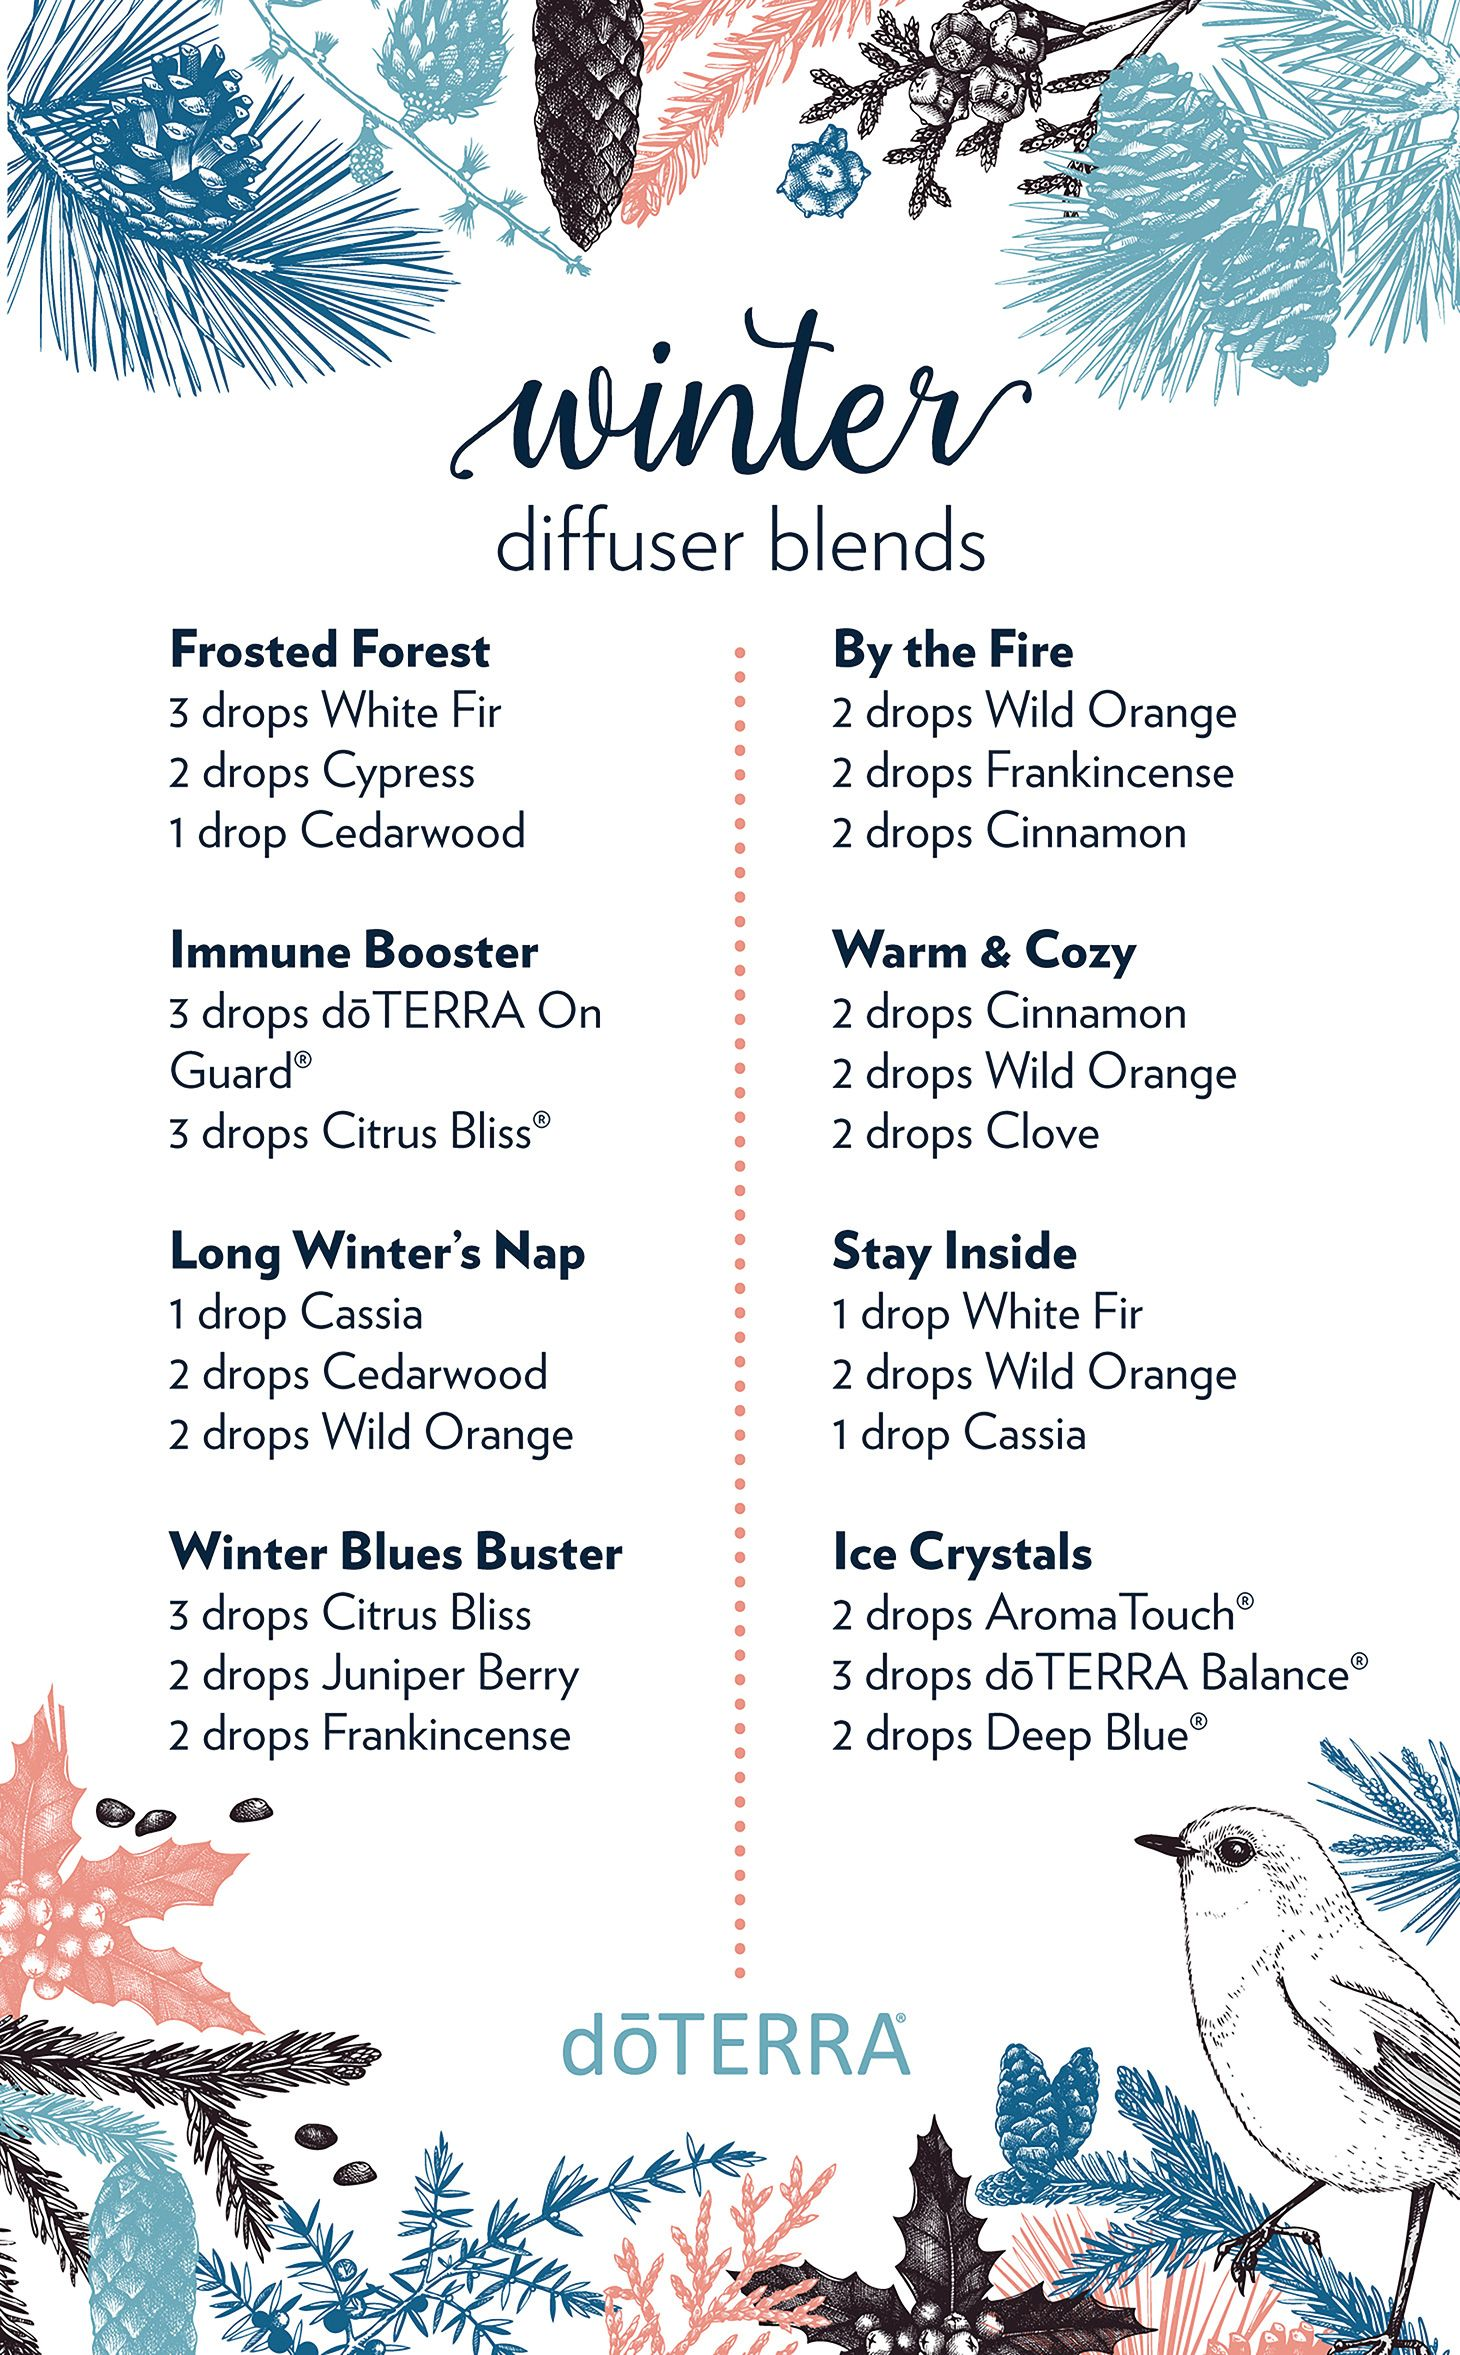 8 Diffuser Blends To Diffuse During Wintertime Diffuser